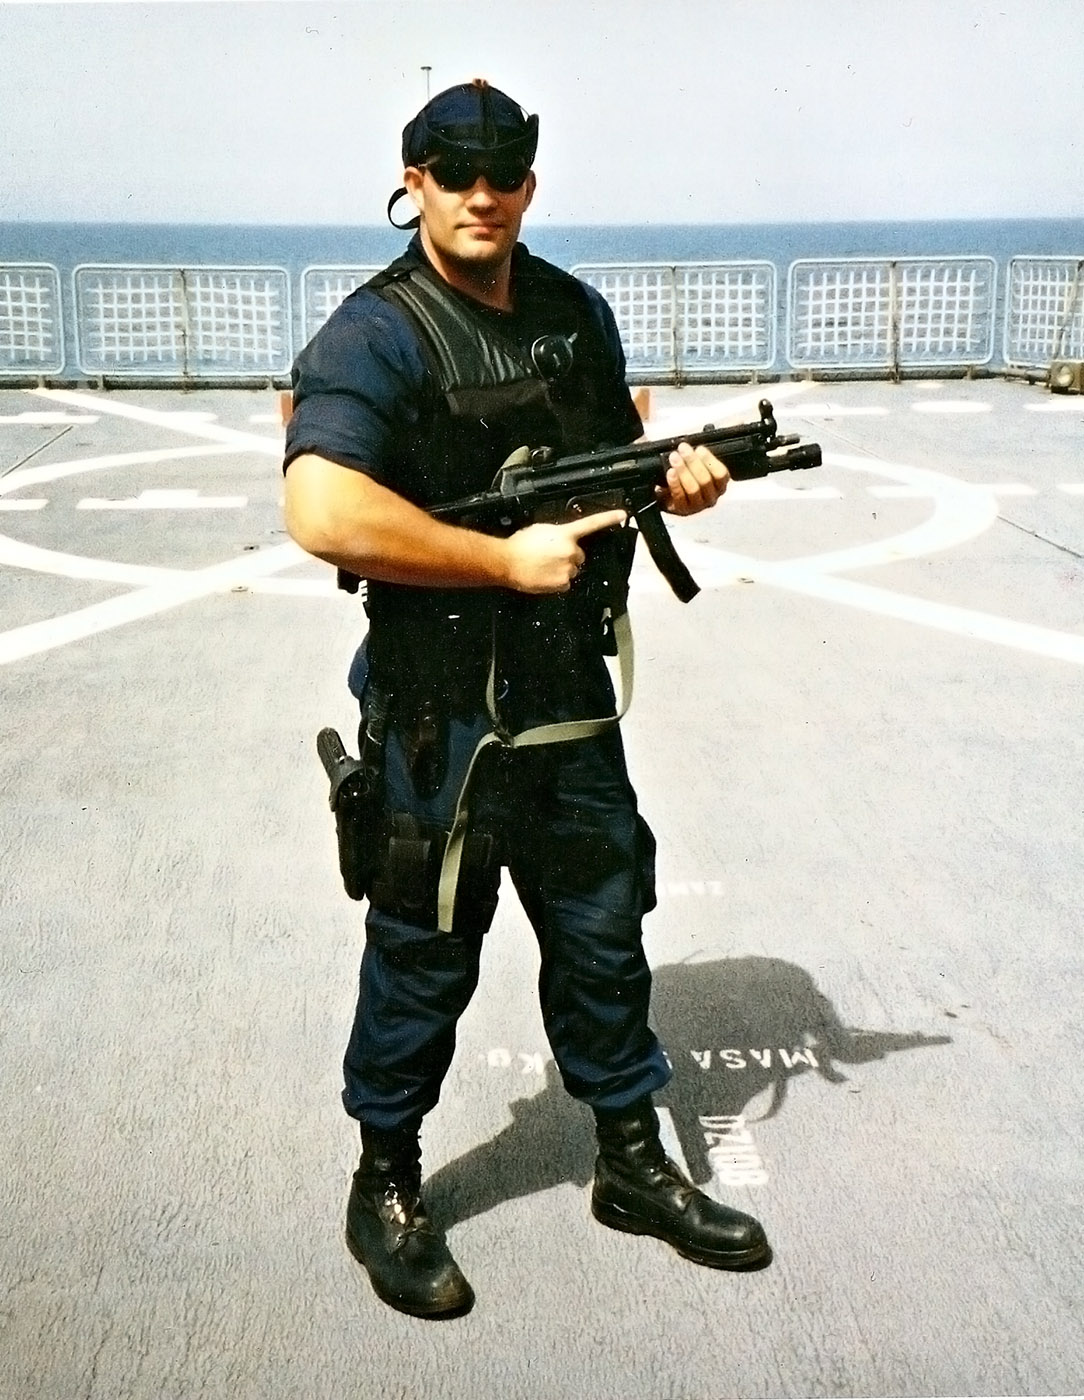 U.S. Coast Guard Petty Officer Third Class Nathan B. Bruckenthal, 24, of Smithtown, New York, assigned to Tactical Law Enforcement Team South, Law Enforcement Detachment 403, based at Coast Guard Air Station Miami in Florida, was killed on April 24, 2004, at the Khawr Al Amaya Oil Terminal off the coast of Iraq when a boat that he and his team intercepted near the terminal exploded. He is survived by his wife Pattie, daughter Harper, born after his death, father Eric, mother Laurie Bullock, and sister Noabeth.